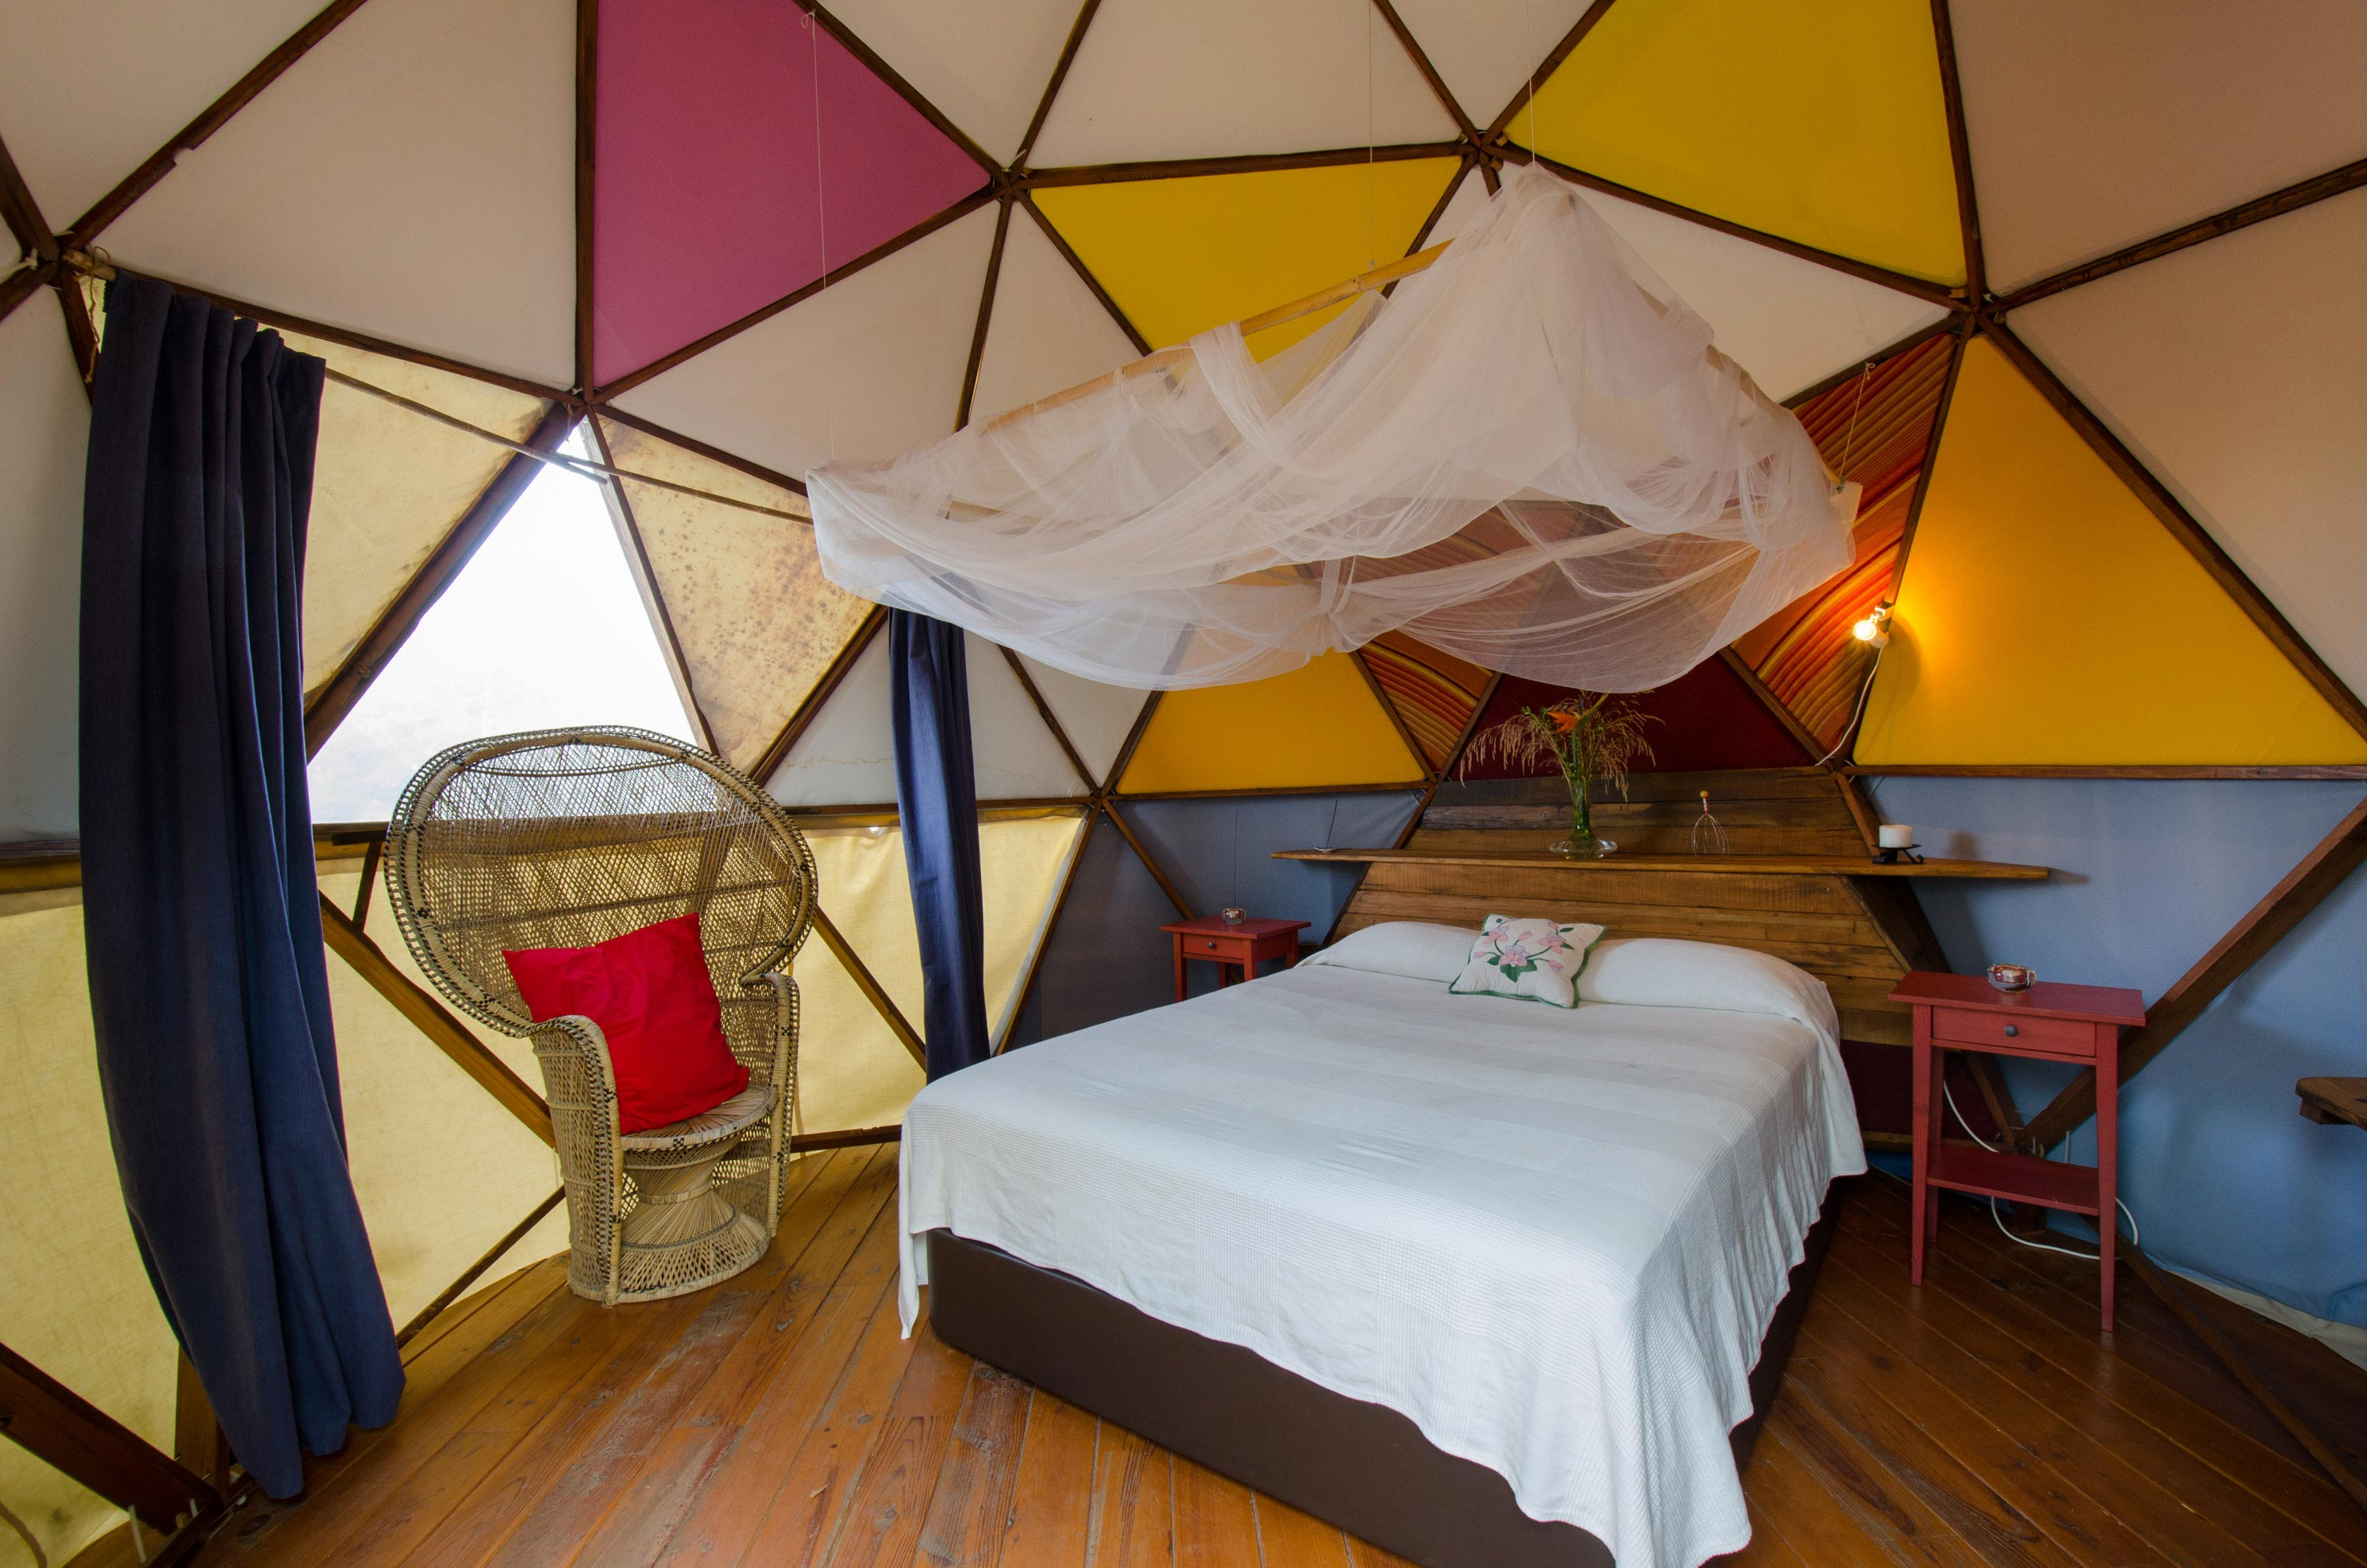 Los_Banos_De_La_Luz_Accommodation_Diverse_Geodesic_Dome_01